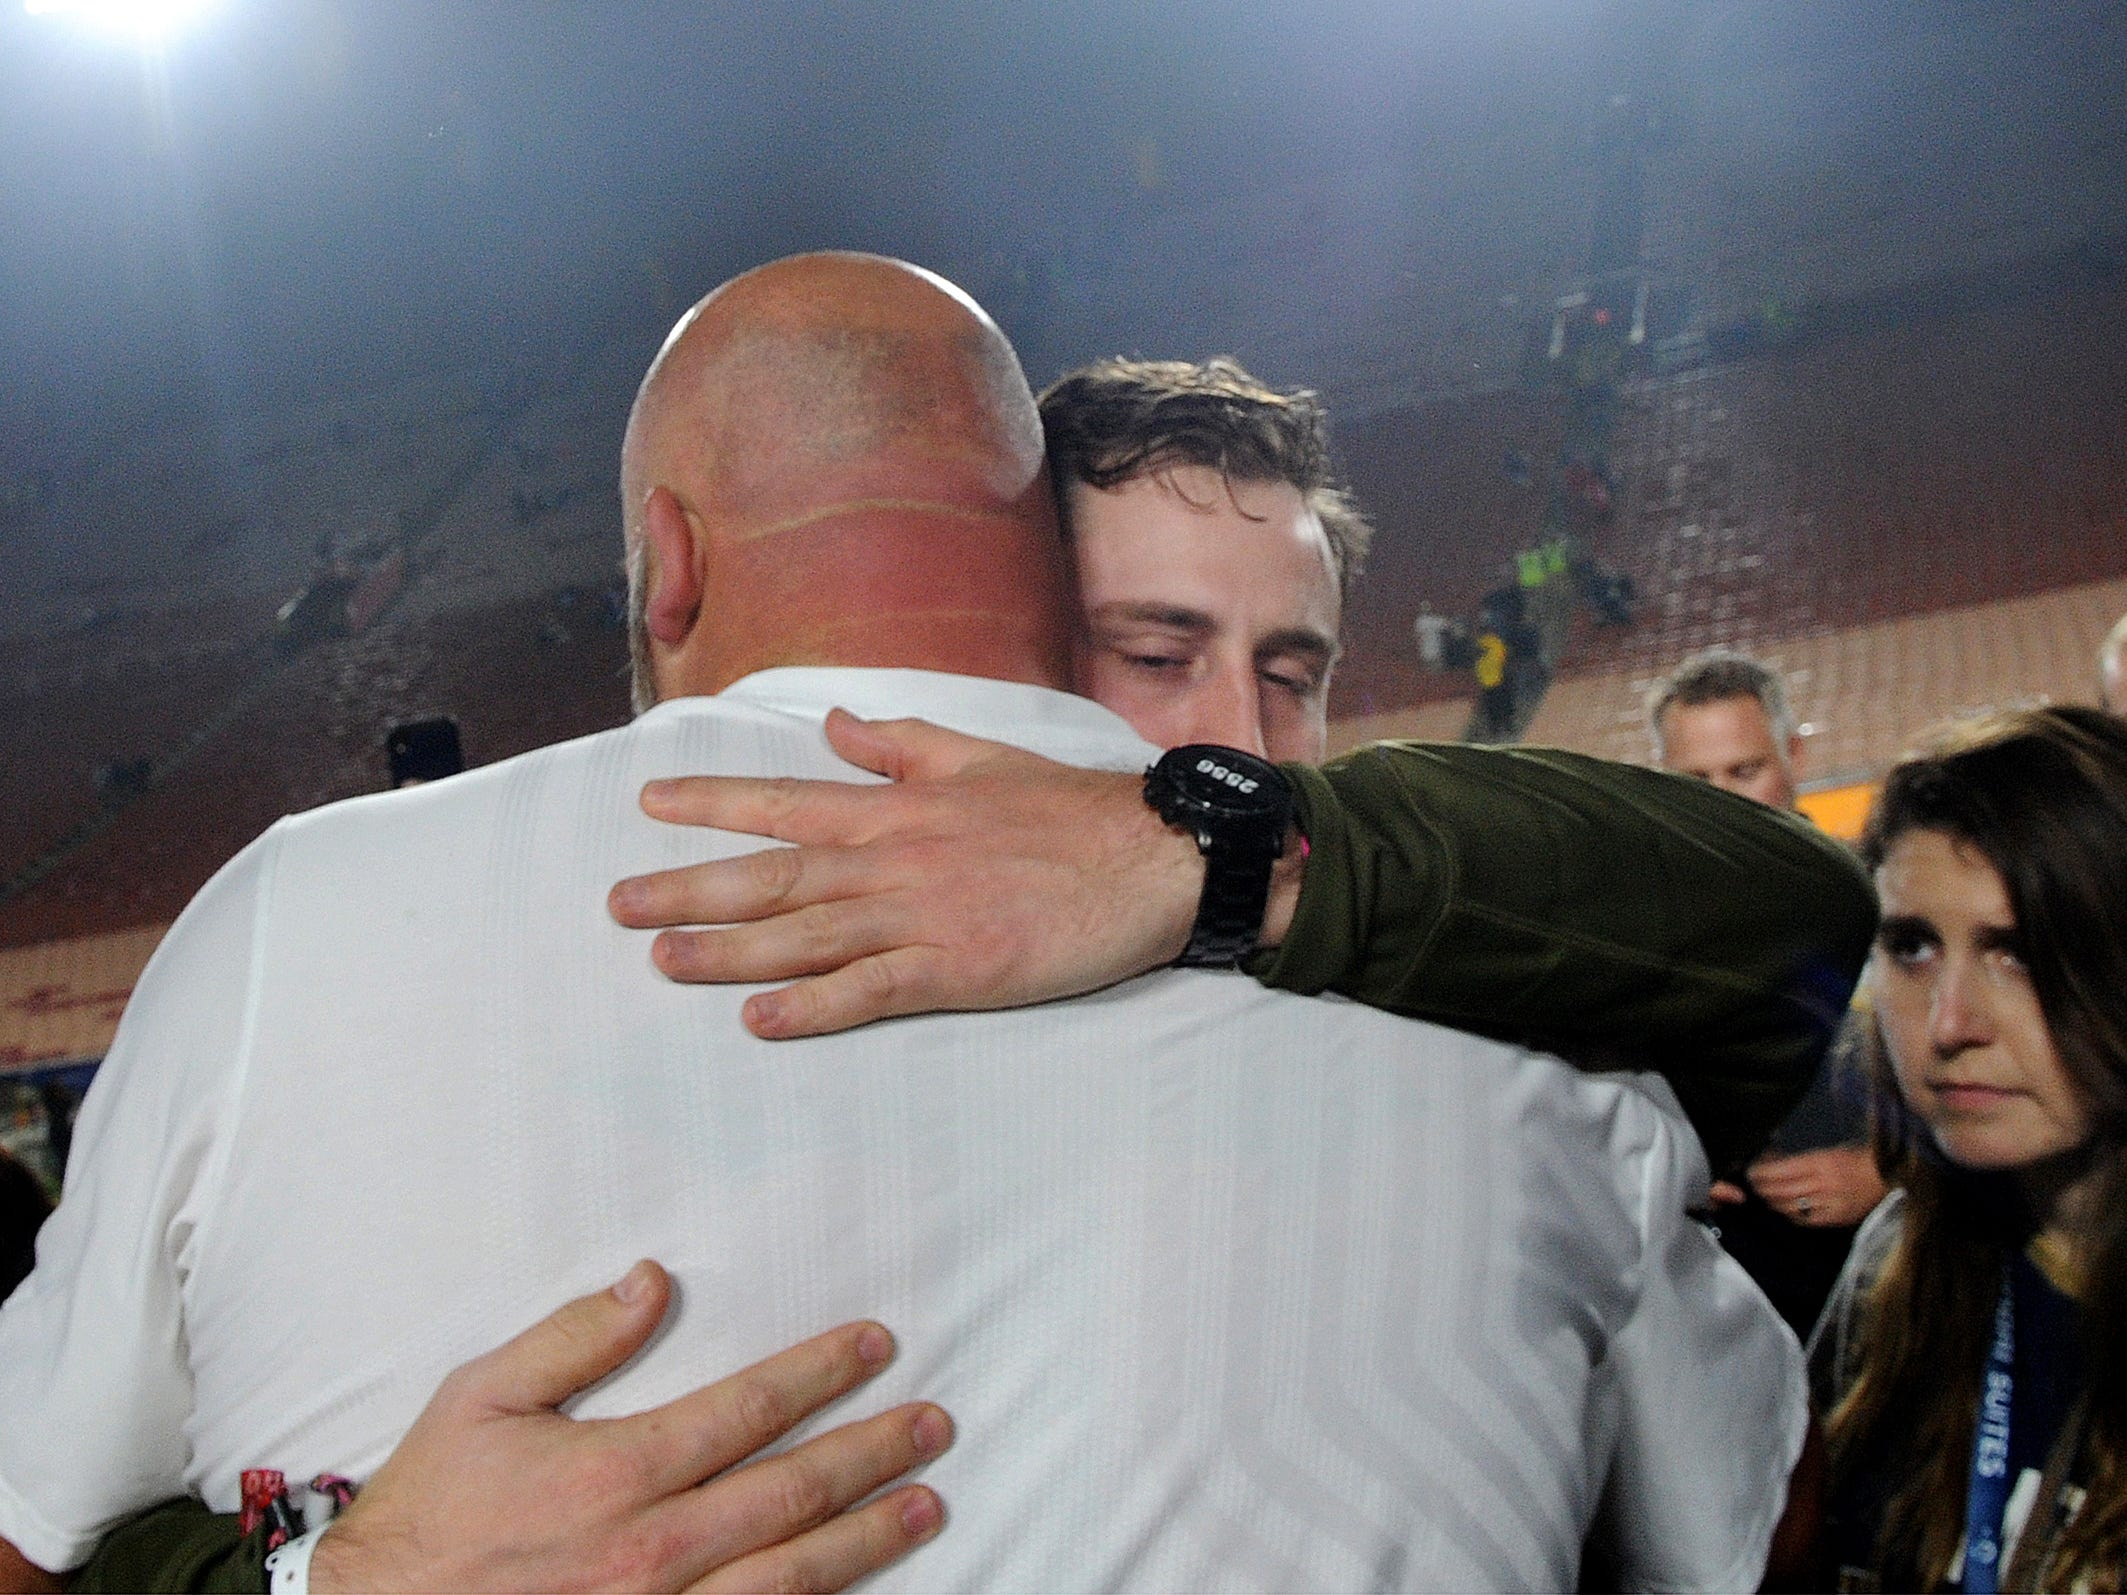 Rams offensive tackle Andrew Whitworth, left, hugs Jordan Helus, son of Ventura County Sheriff's Sgt. Ron Helus, after Monday night's game against the Chiefs. Sgt. Helus was killed during the Borderline Bar & Grill shooting.